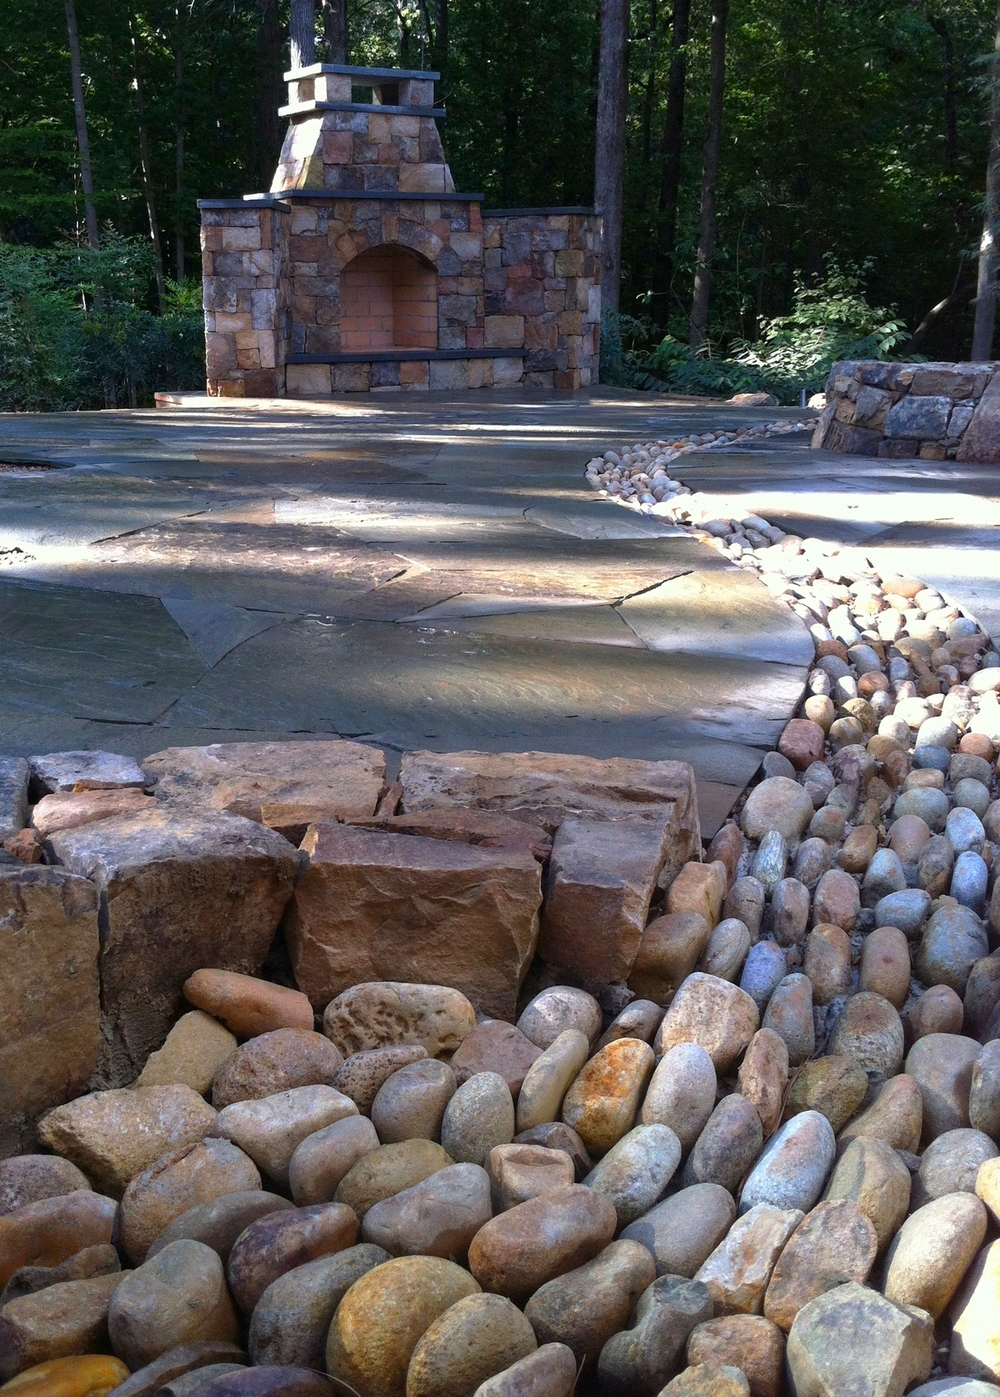 Pebble stream through a dry laid fireplace